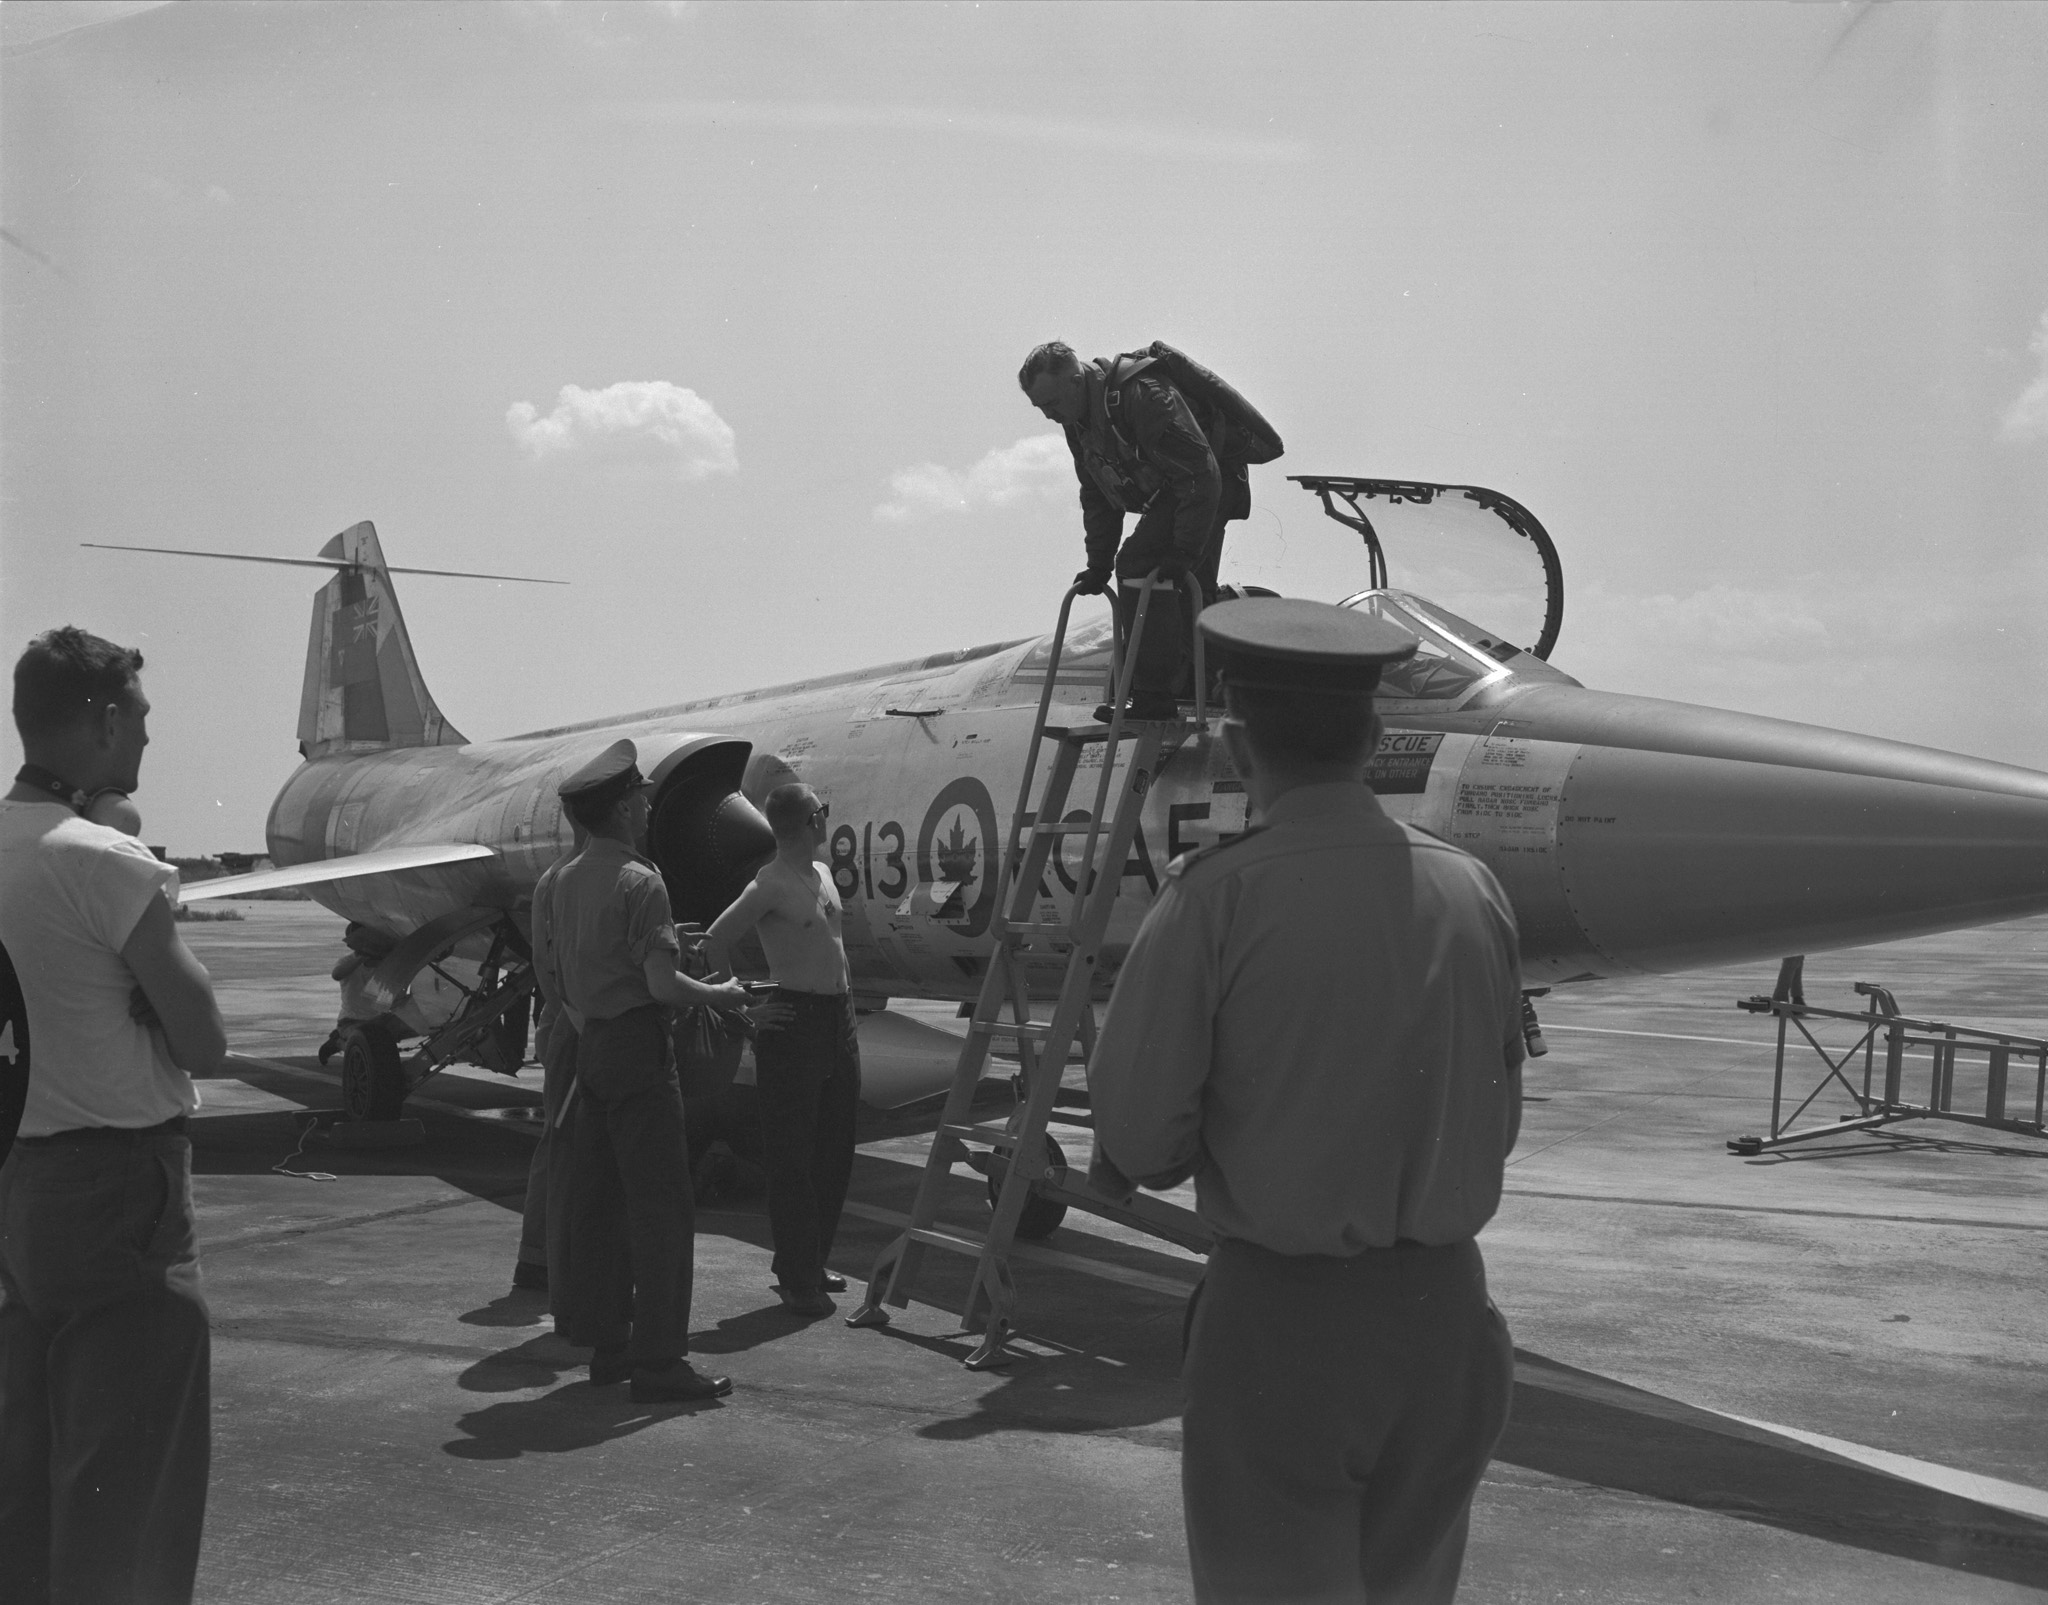 "The original caption of this photo reads: ""The first of many CF-104 Starfighter jet aircraft that would arrive at Decimomannu, Sardinia, before the Canadians would leave this tri-nation NATO airbase in July 1970. Prior to this arrival on May 6, 1963, Canadian F-86 Sabres and CF-100 Canucks were common sights here as Canadian pilots, from NATO-assigned 1 Air Division bases in France and Germany, came to practice bombing or gunnery at the nearby Capo della Frasca ranges."" PHOTO: DND Archives, AW296-5"